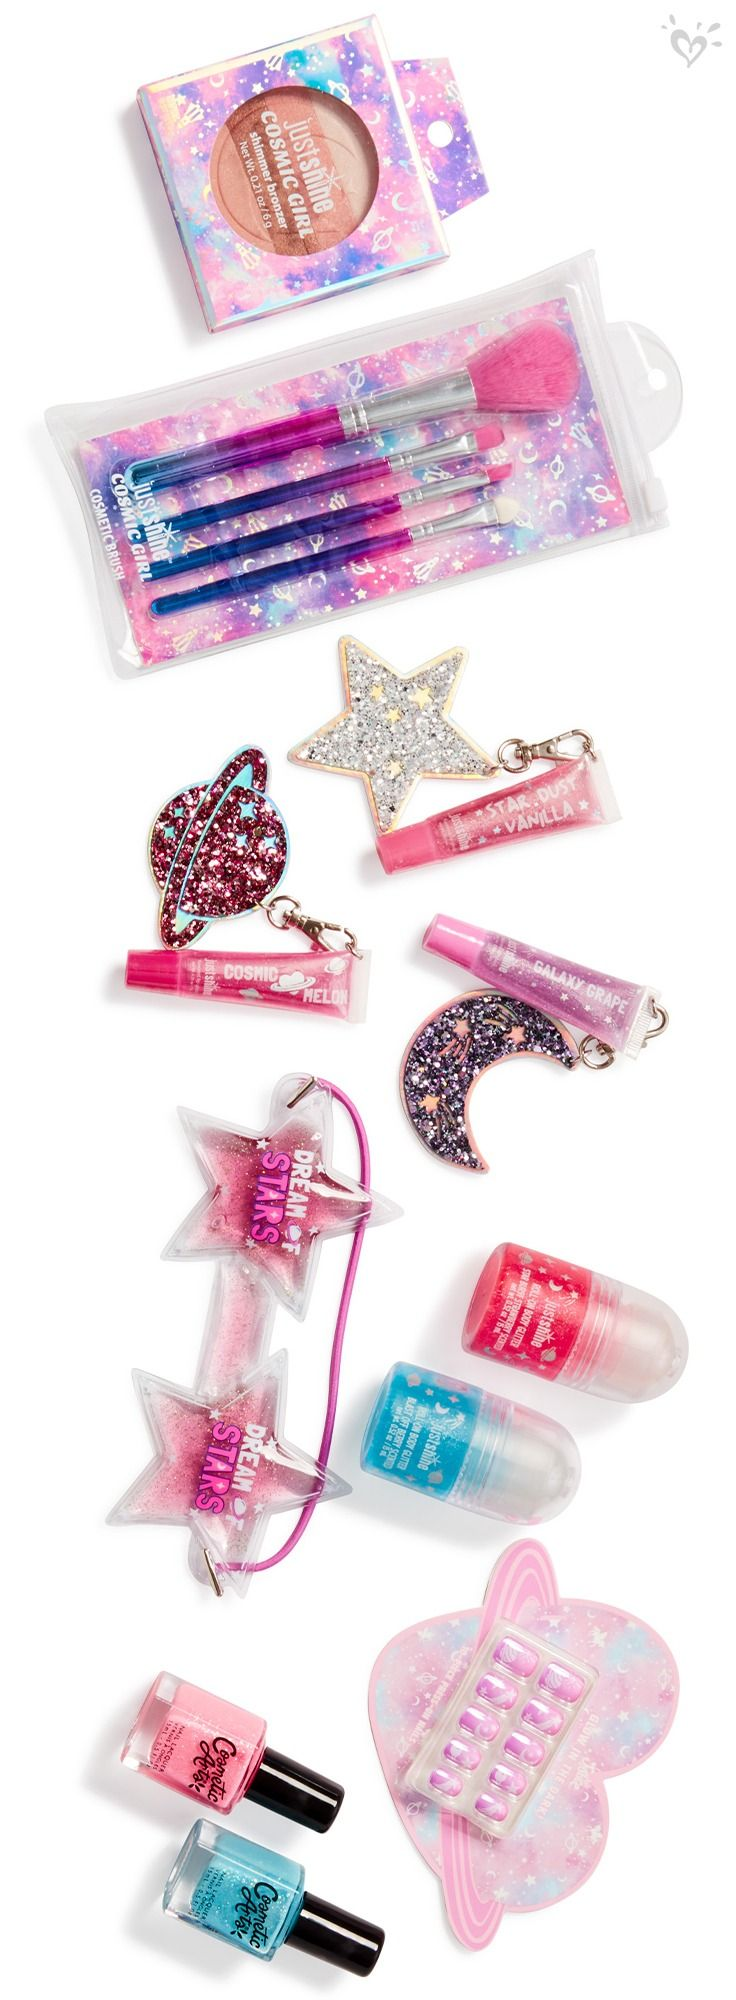 Sparkly, shimmery beauty musthaves she'll love to the